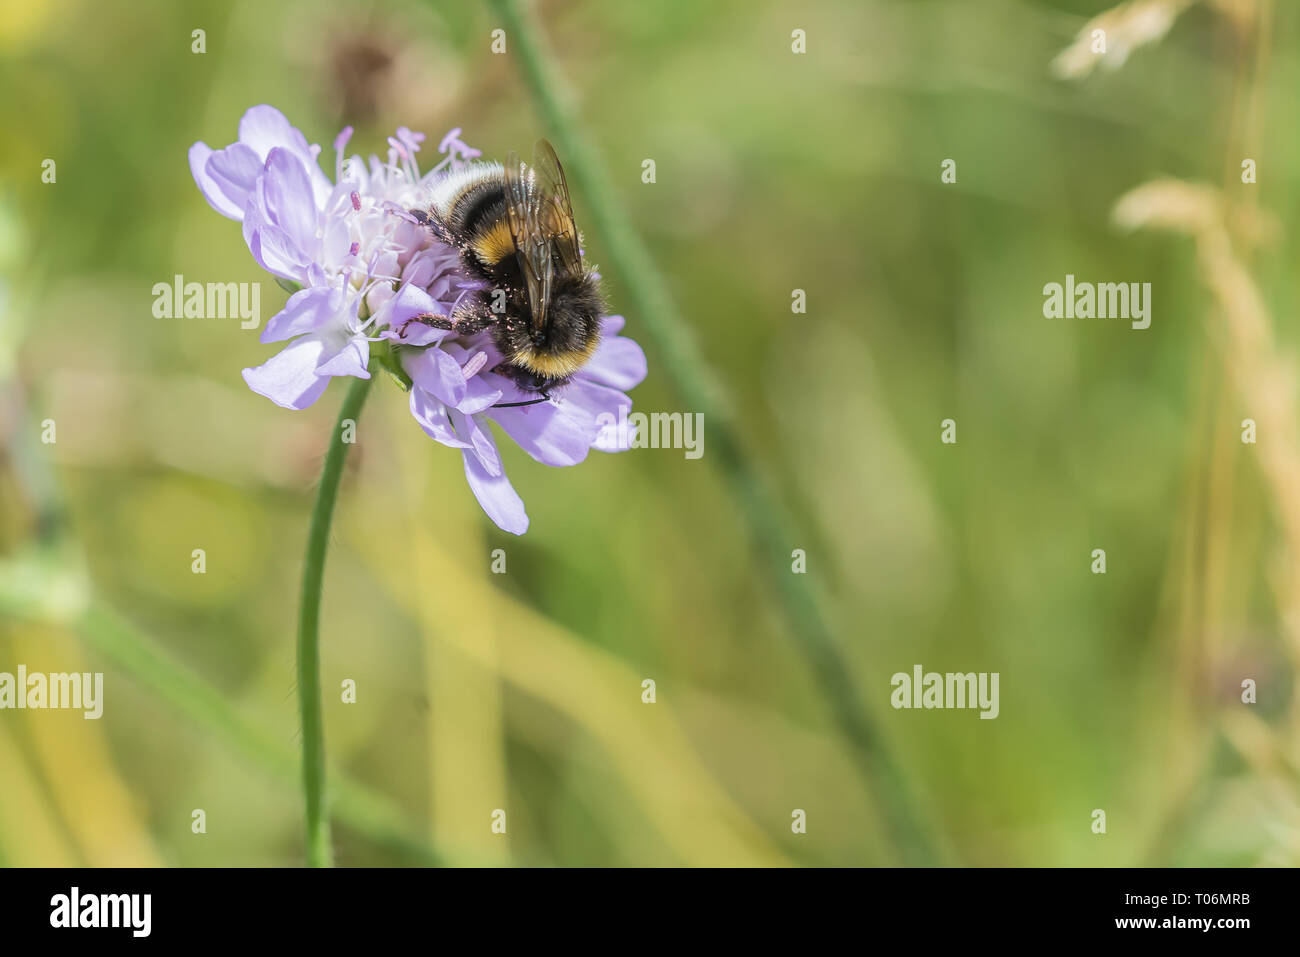 Bumblebee on scabious flower - Stock Image